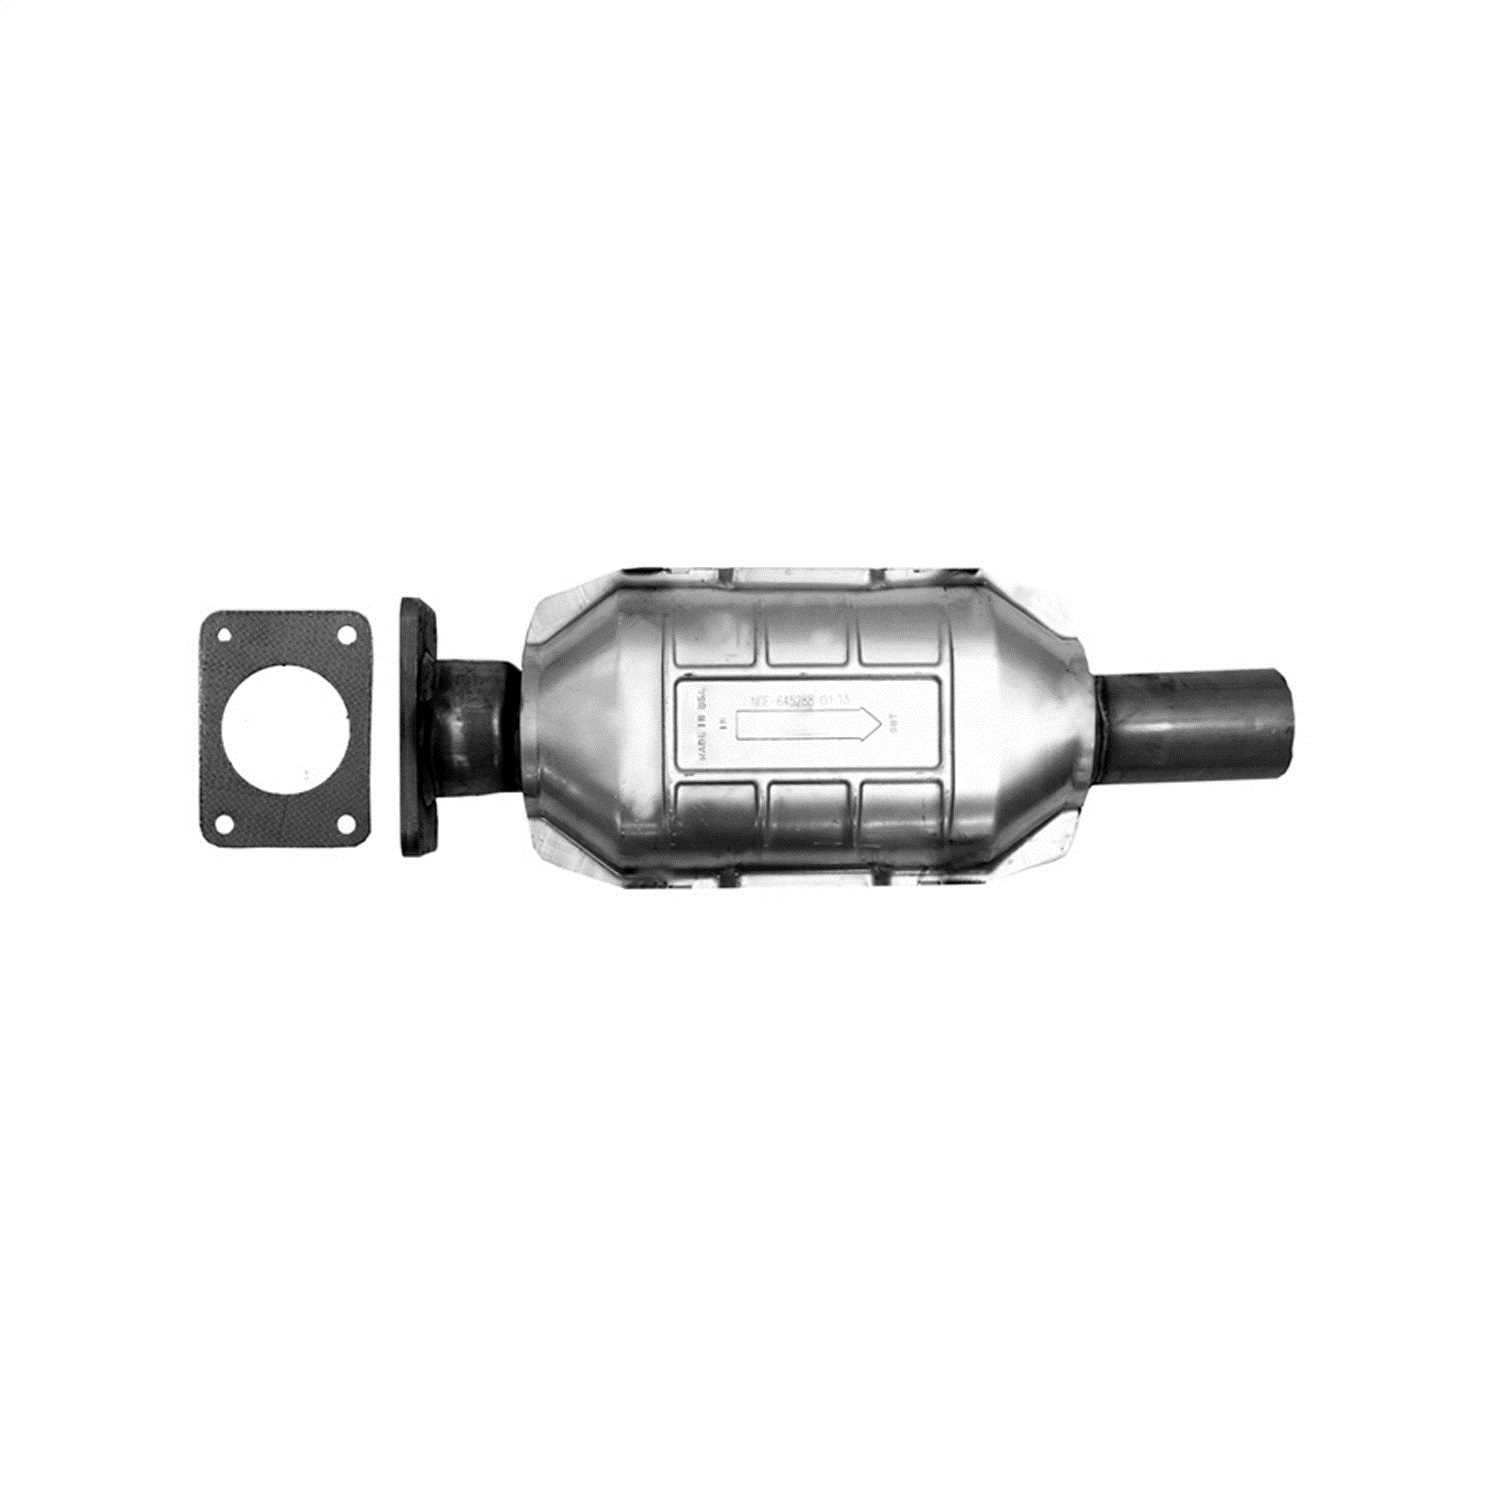 2019988 Flowmaster 49 State Catalytic Converters Direct Fit Catalytic Converter